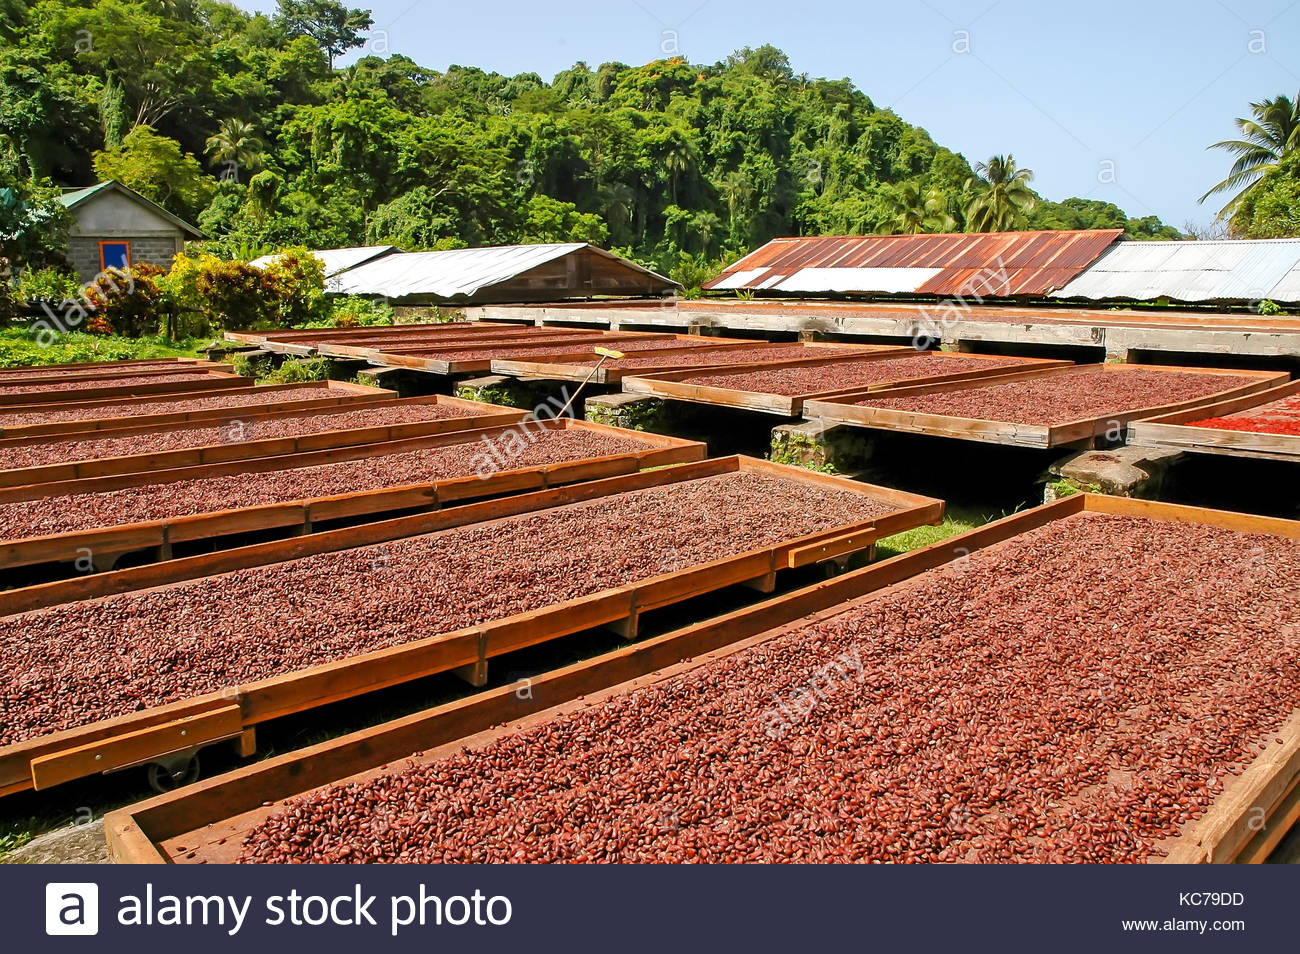 DRY COCOA BEANS FROM CAMEROON FOR SALE